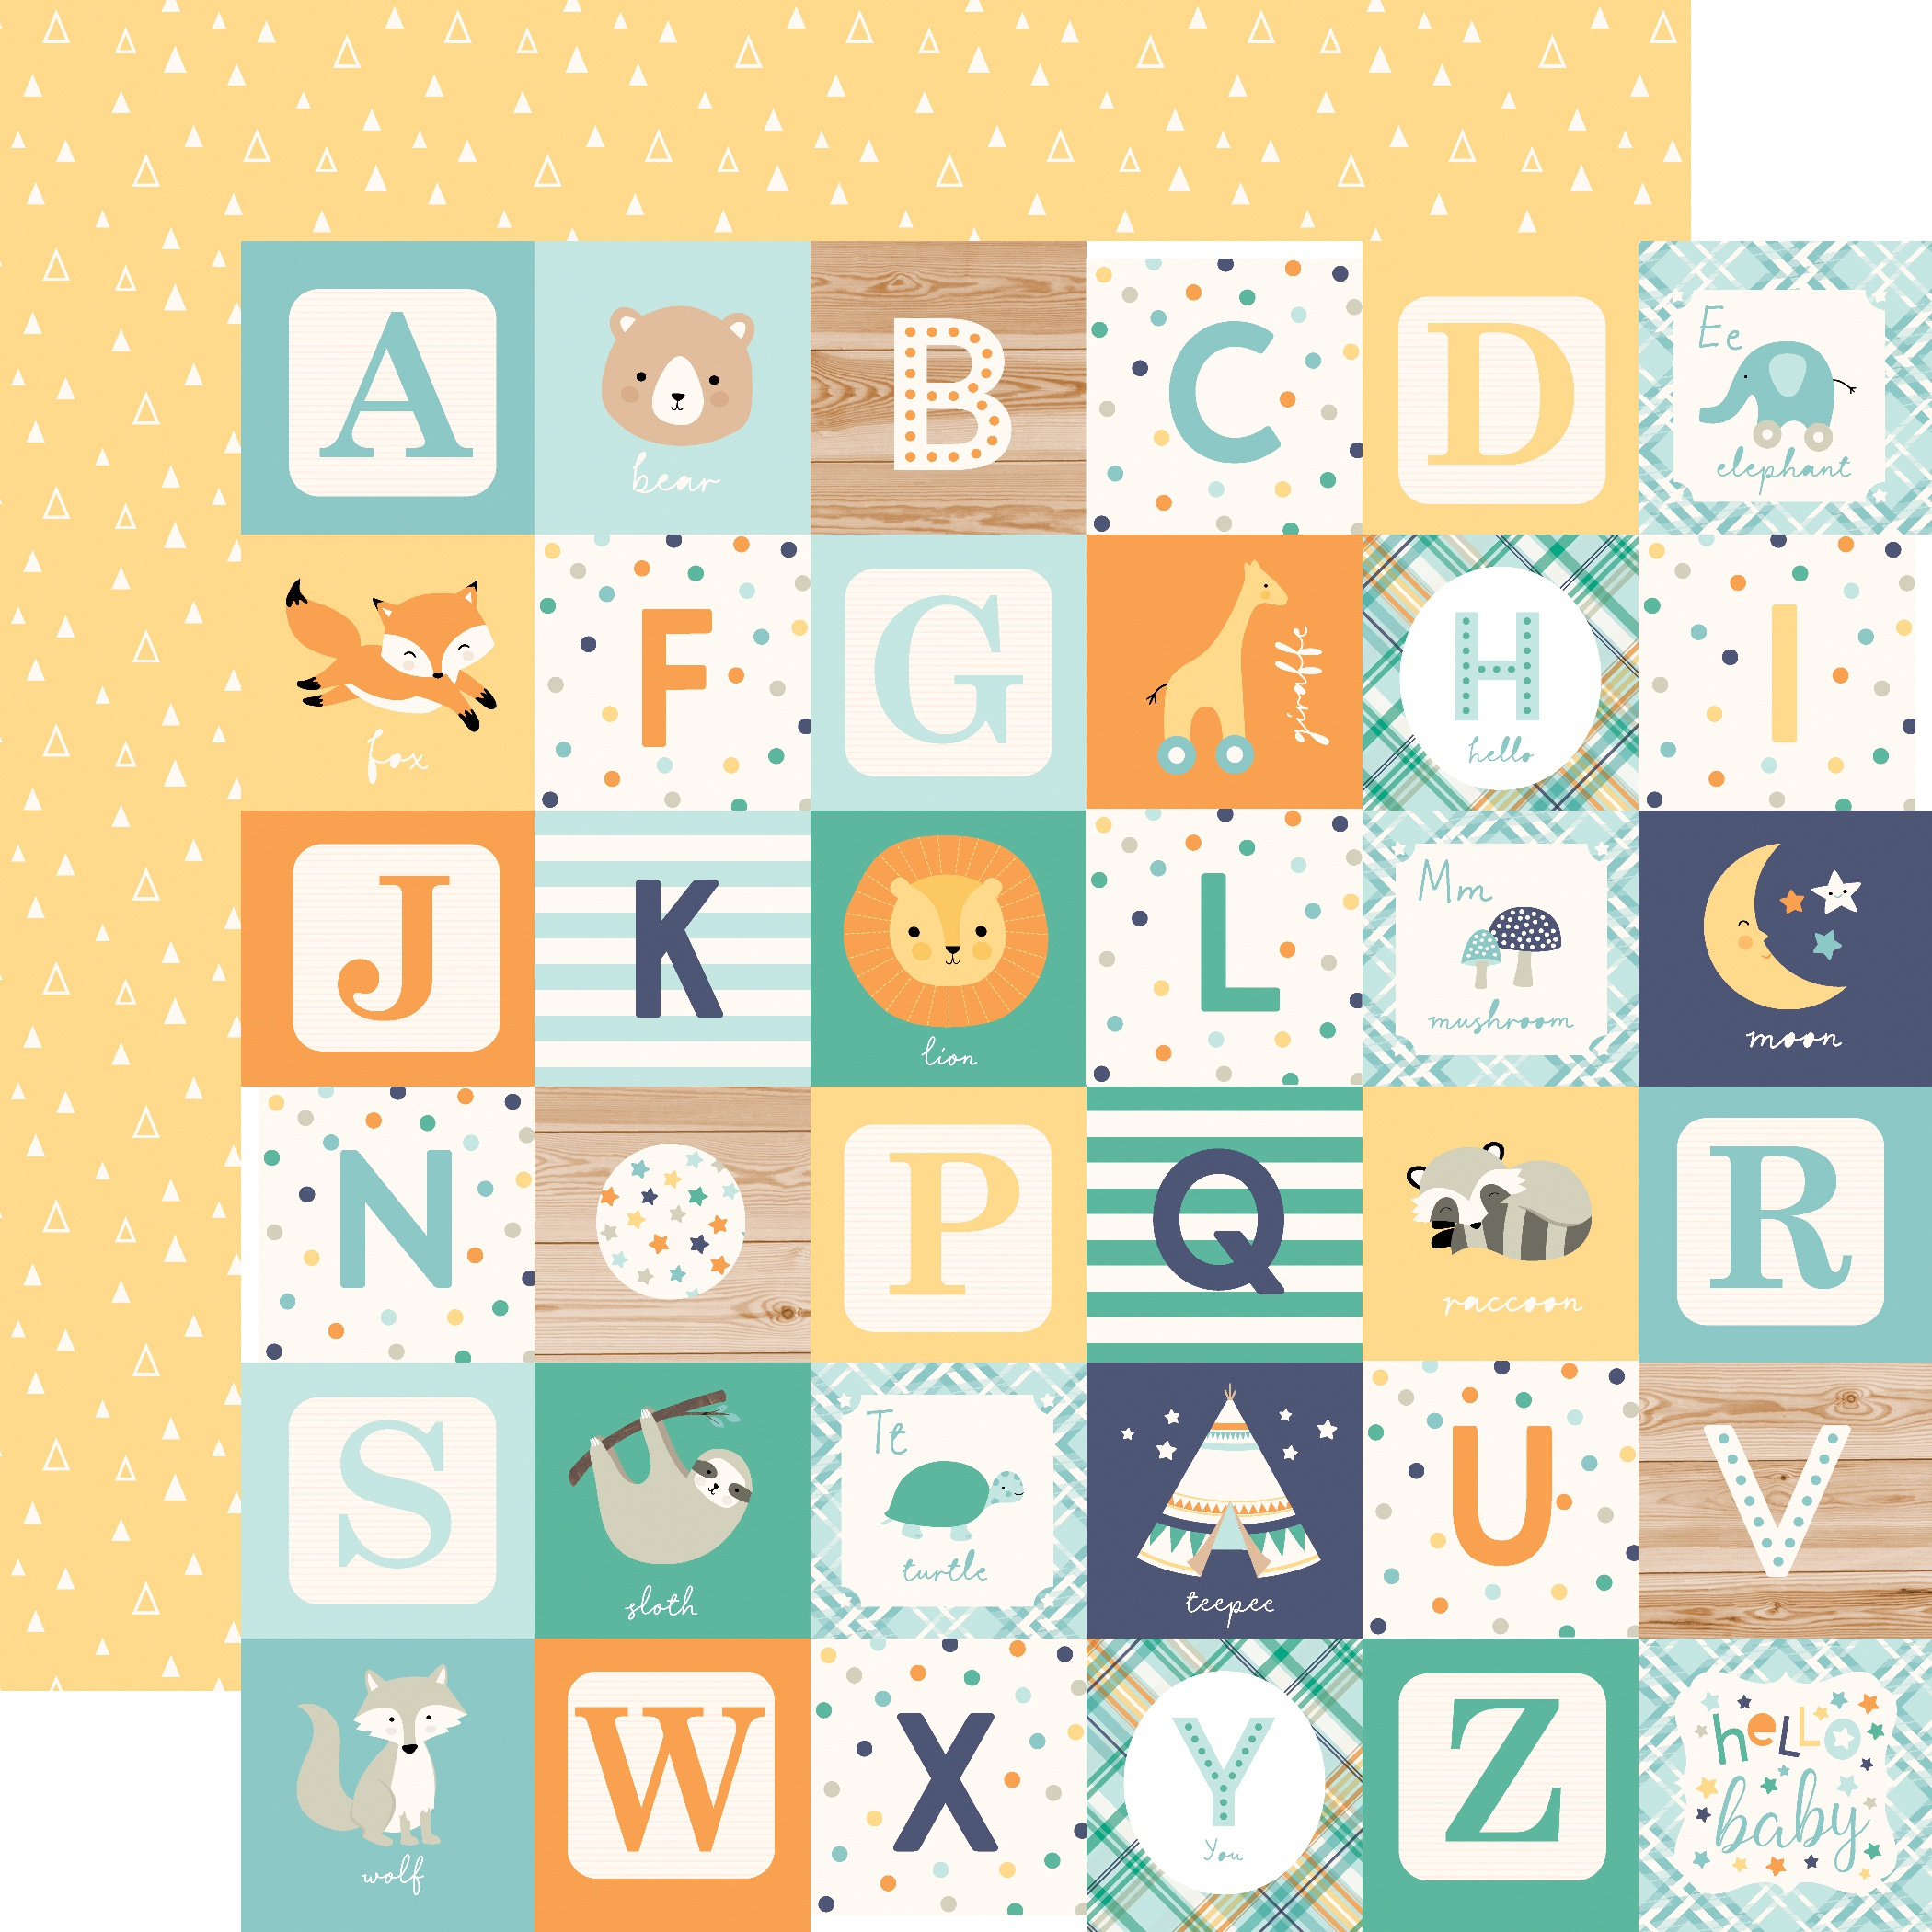 PPR - HELLO BABY IT'S A BOY LITTLE BOY ALPHABET BLOCKS